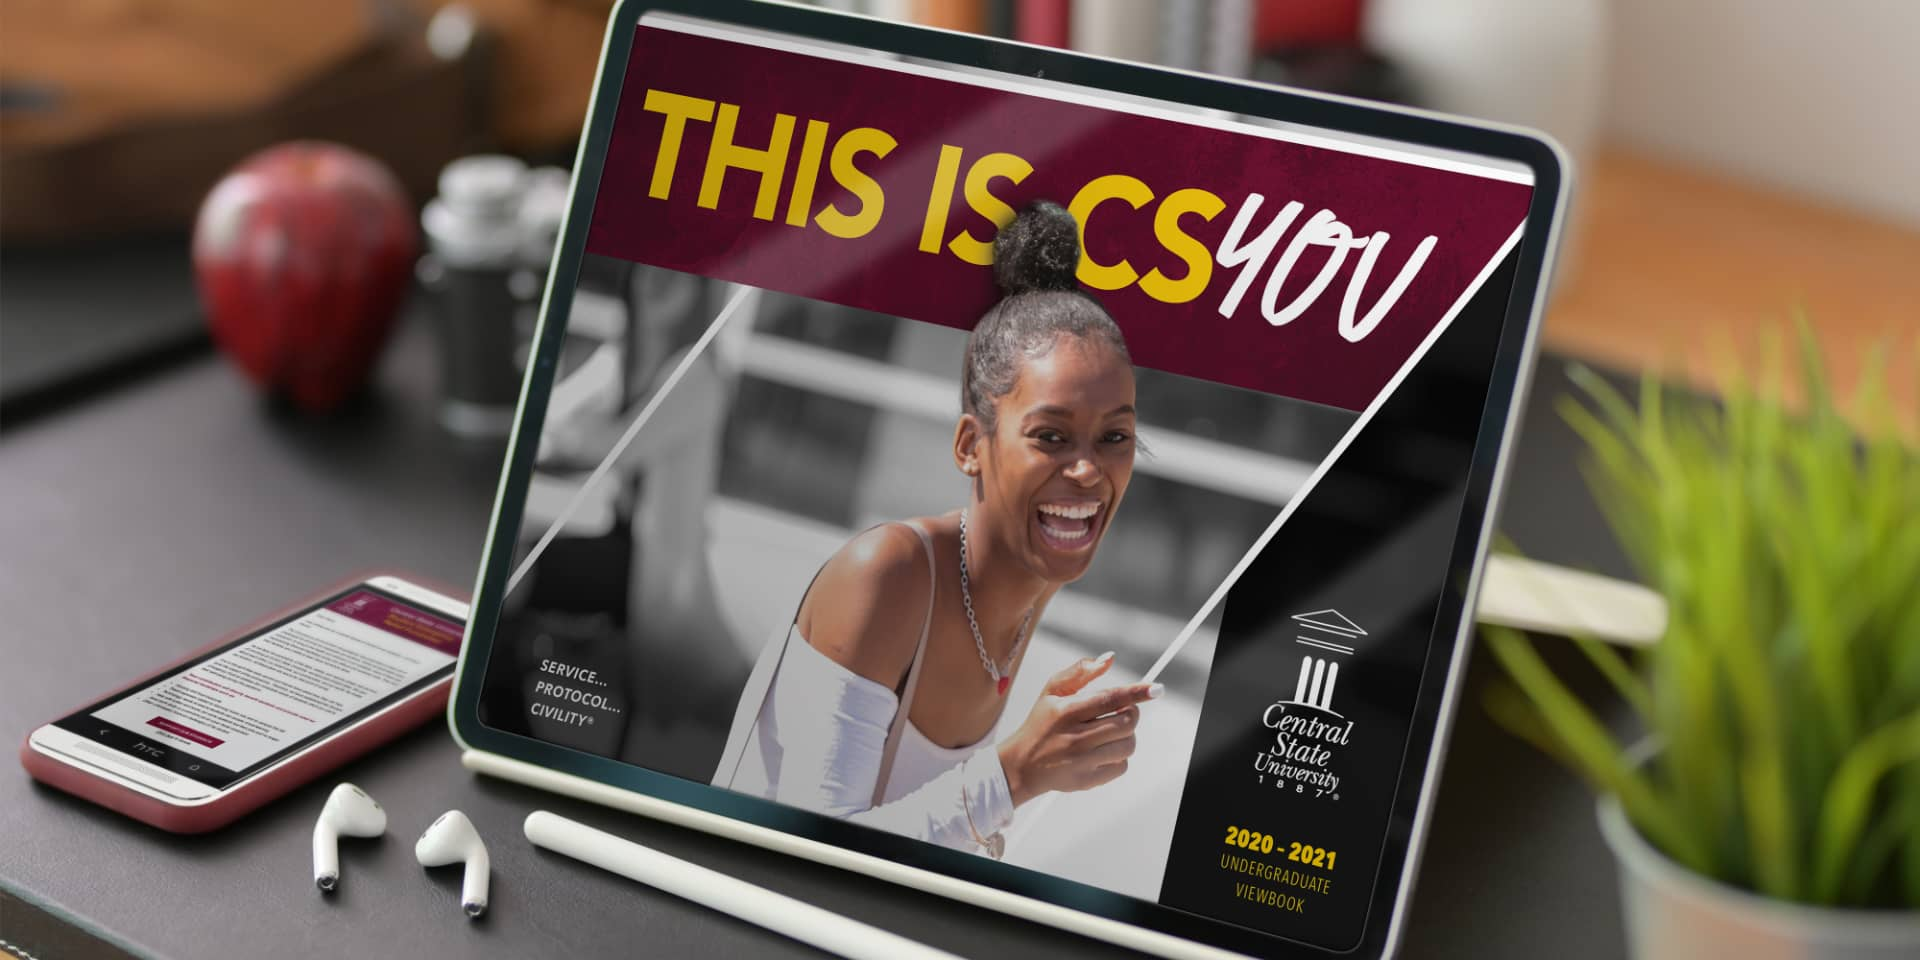 Central State University image on tablet